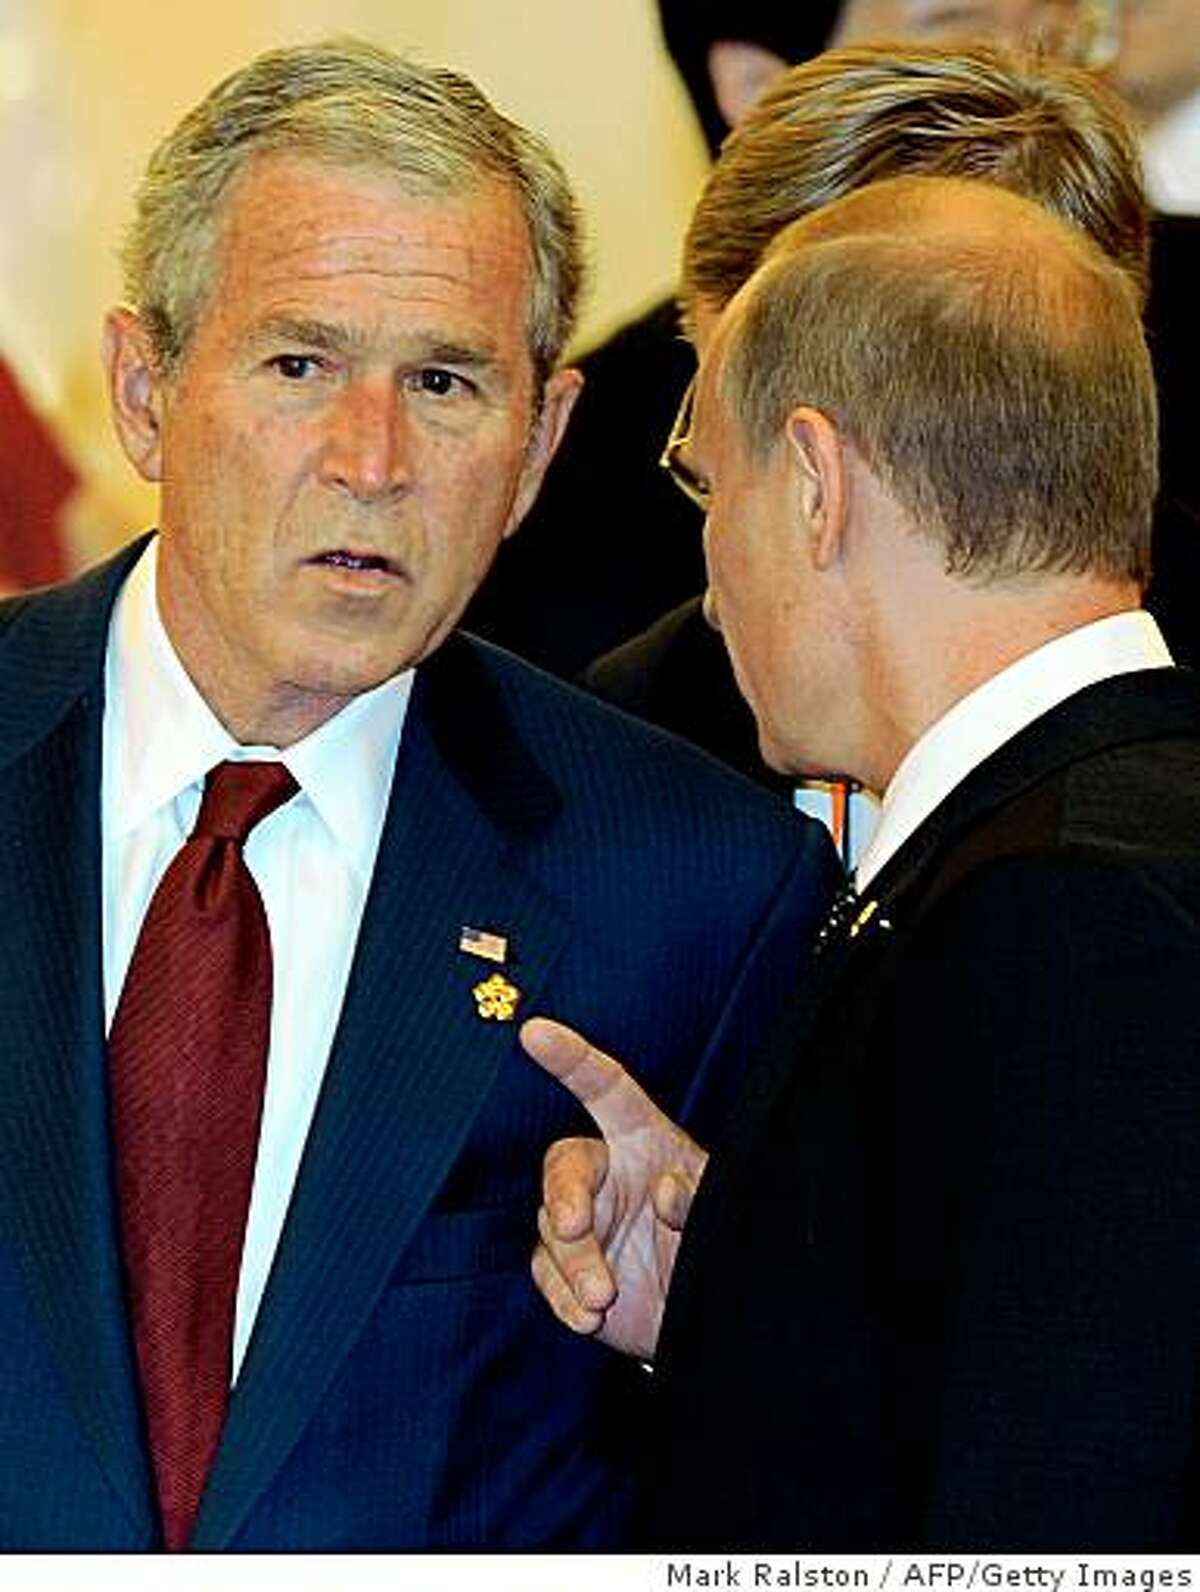 US President George W. Bush (L) talks with Russian Prime Minister Vladimir Putin (R) before a banquet for heads of state in the Great Hall of the People in Beijing on August 8, 2008. President Bush made a new plea for freedom of expression in China just hours before the opening ceremony of the Olympic Games. The US leader, who has said he does not want to politicise his attendance at the Games, said he could be candid with China because the two countries had built up a strong relationship built on